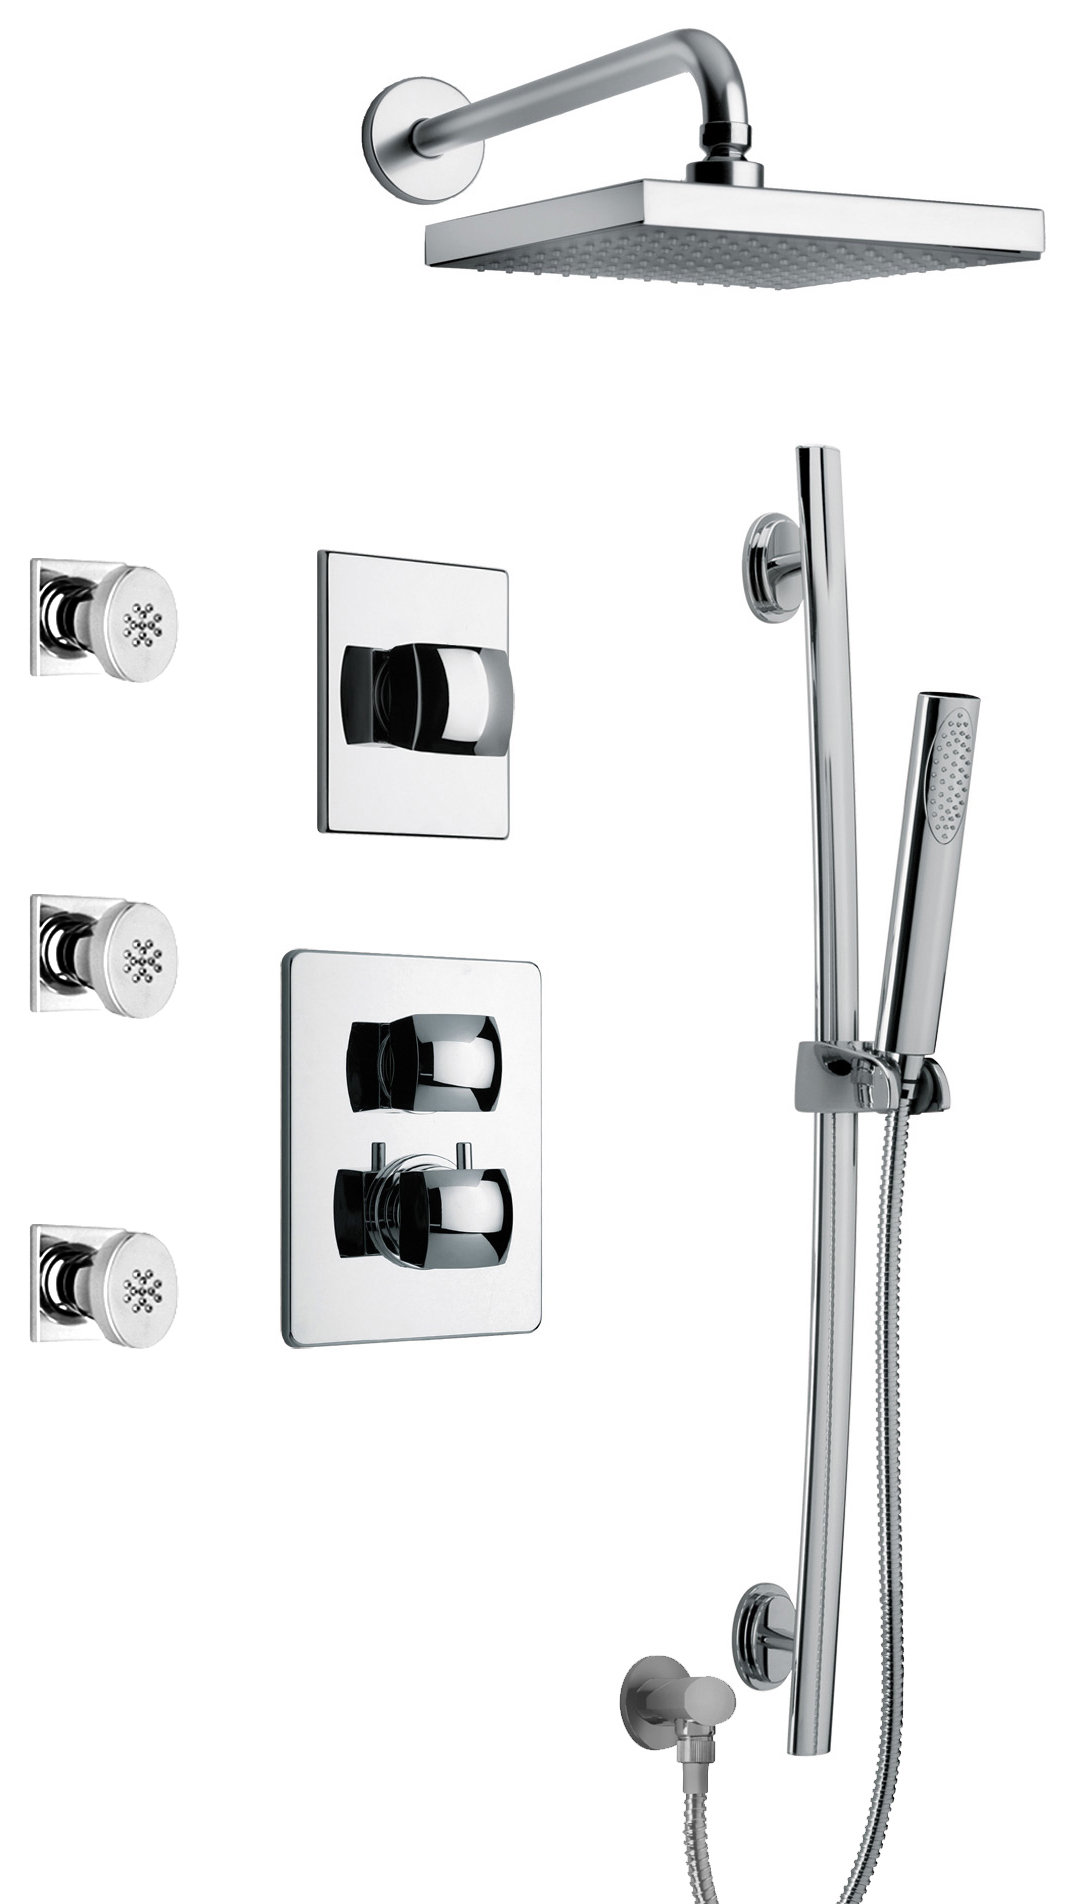 "Thermostatic Shower With 3/4"" Ceramic Disc Volume Control, 3-Way Diverter, 3 Concealed Body Jets in Chrome Finish"